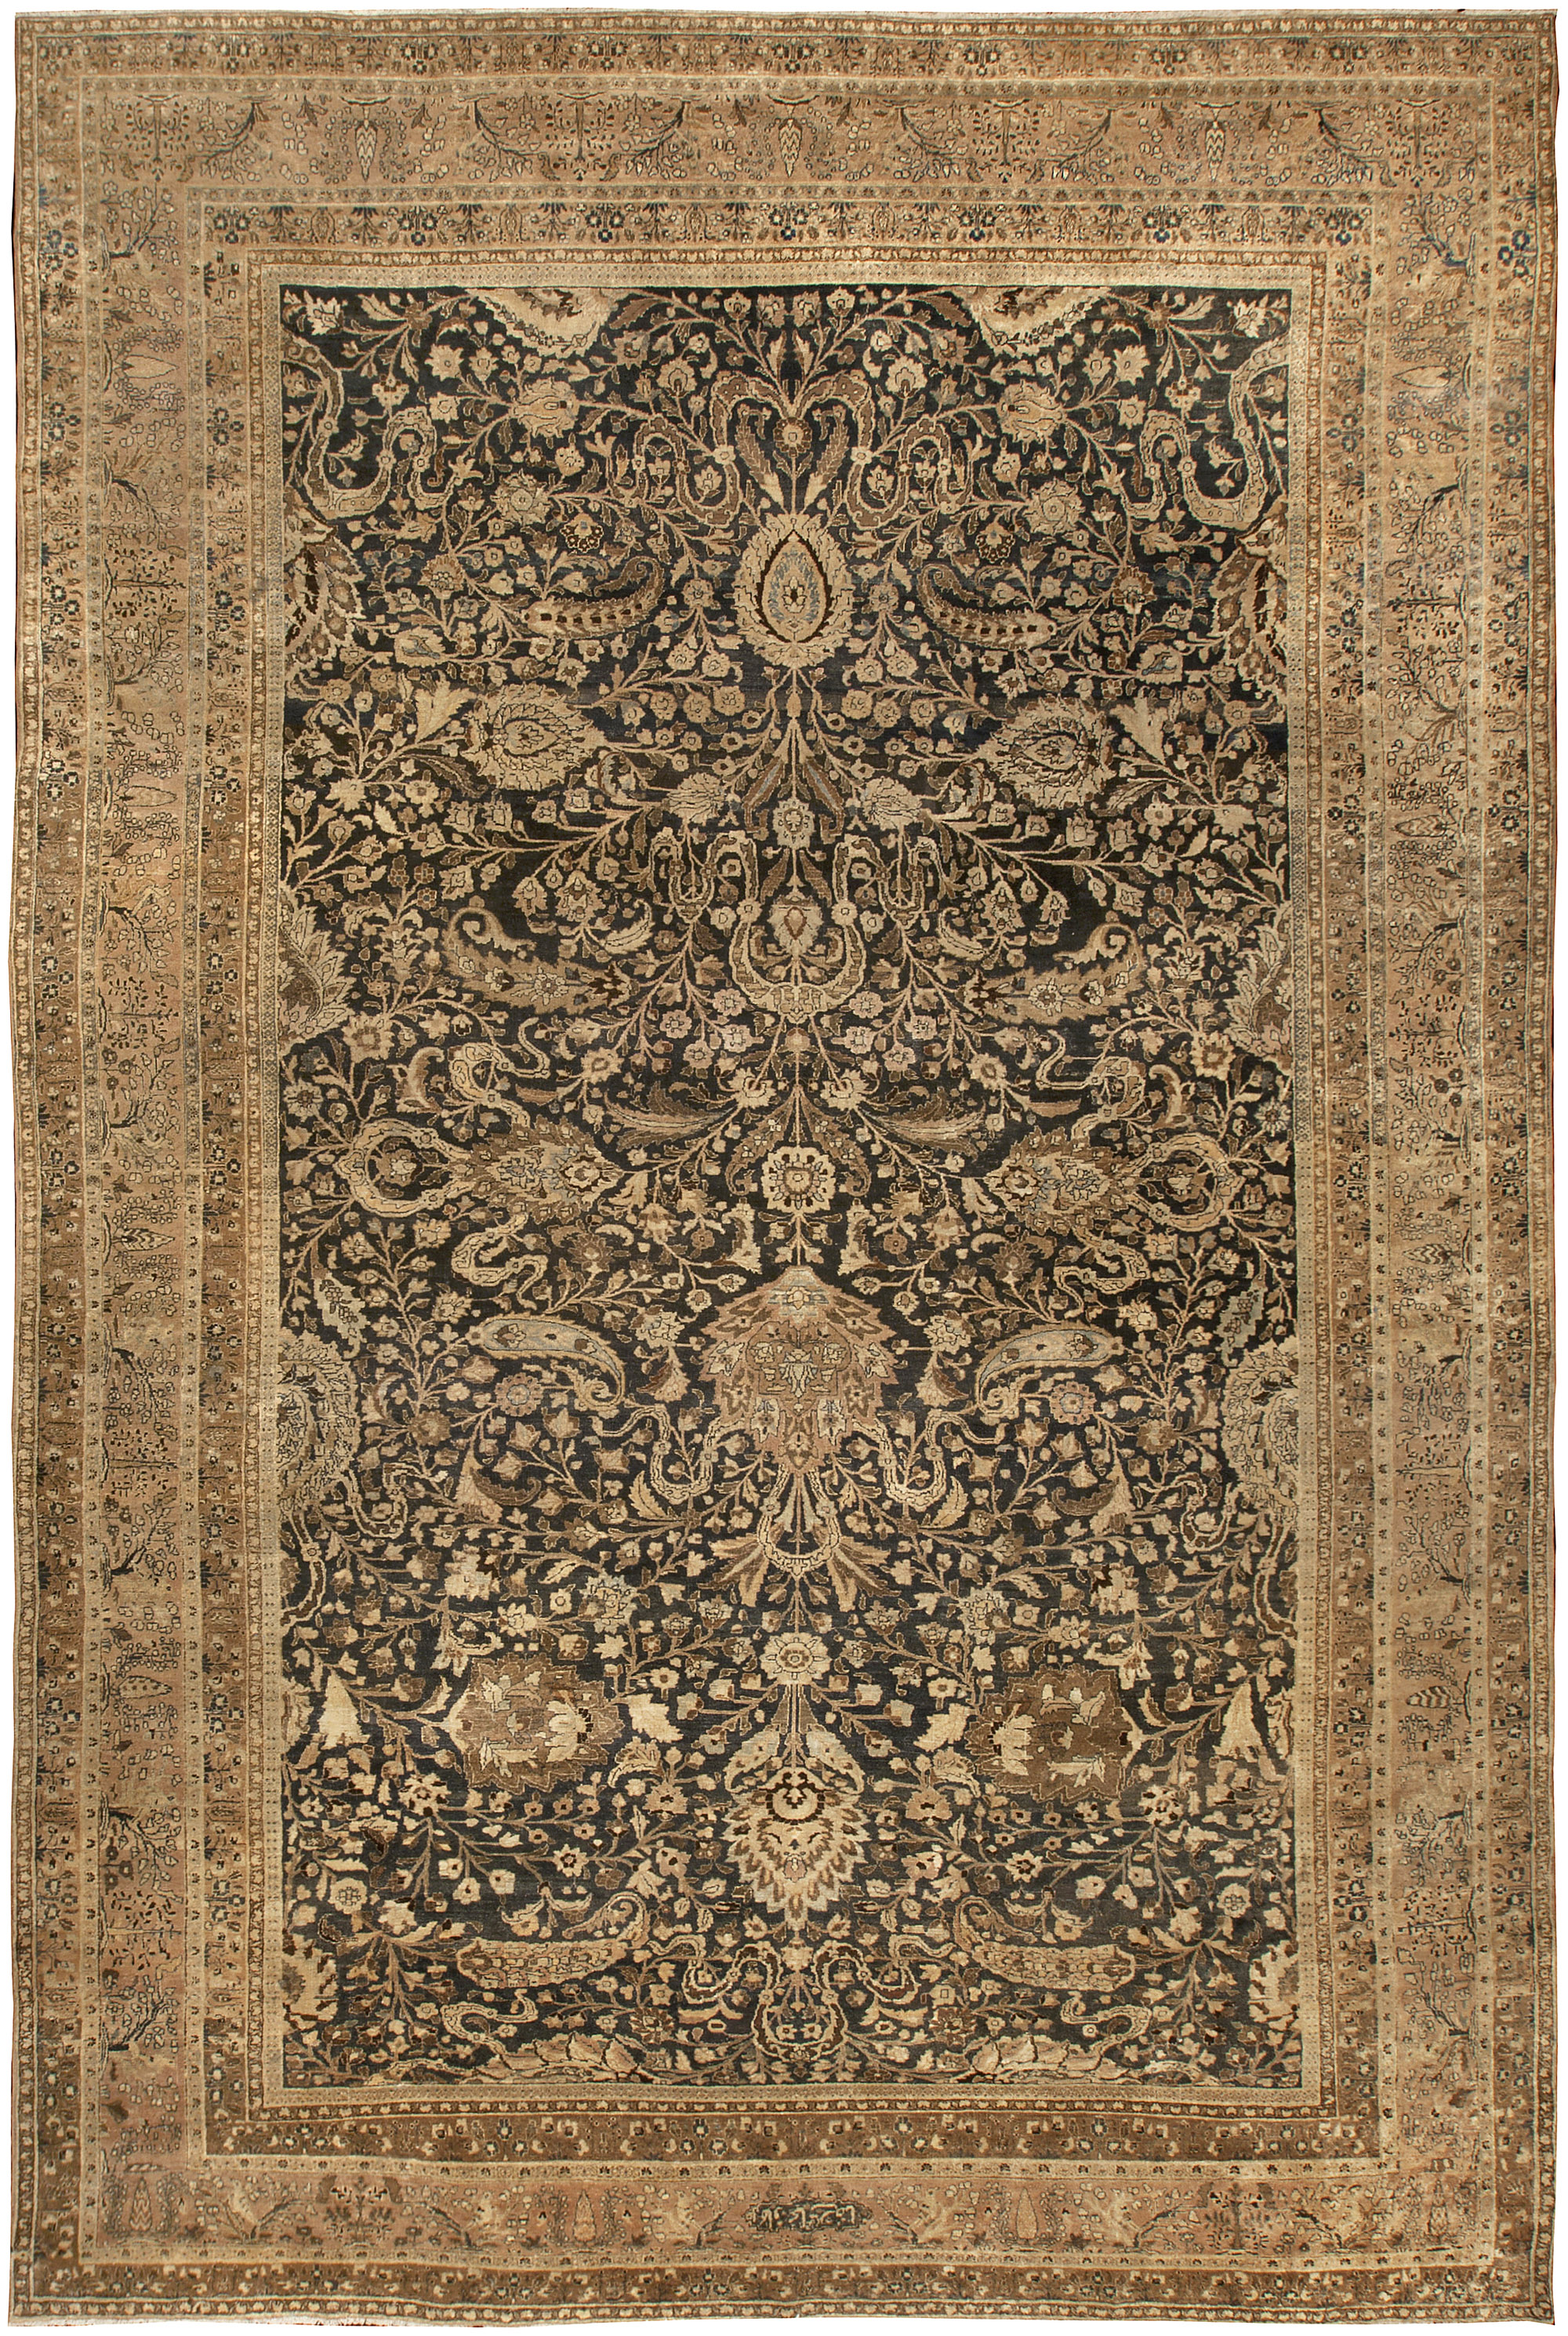 Antique Persian Khorassan Rug Bb4937 By Dlb